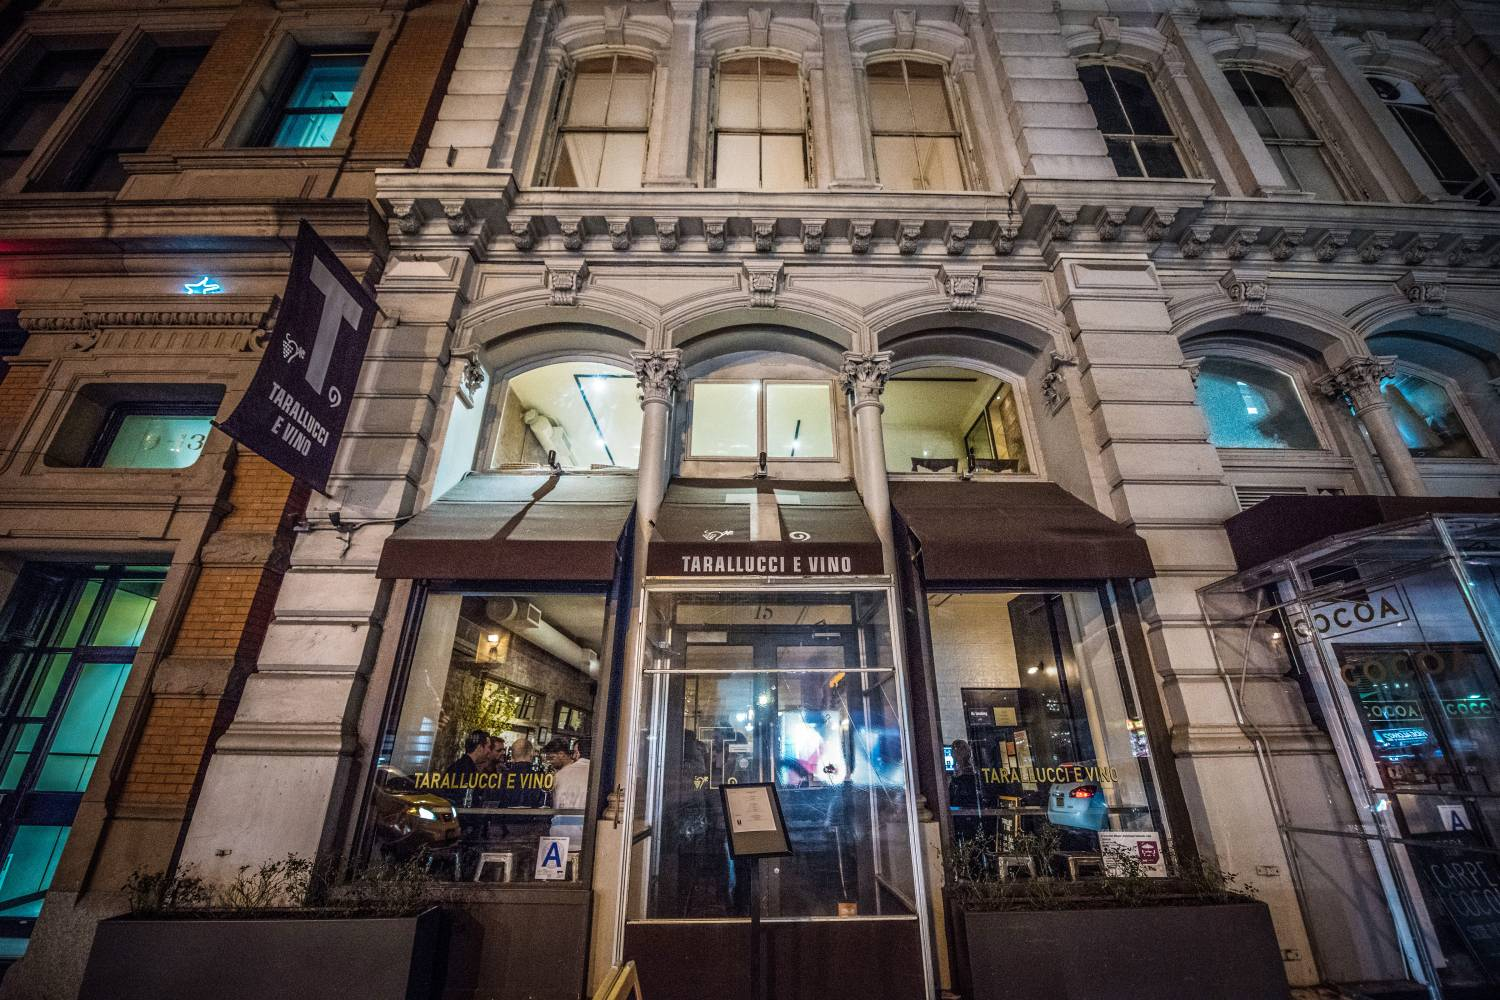 Exterior of Tarallucci e Vino in Union Square at night